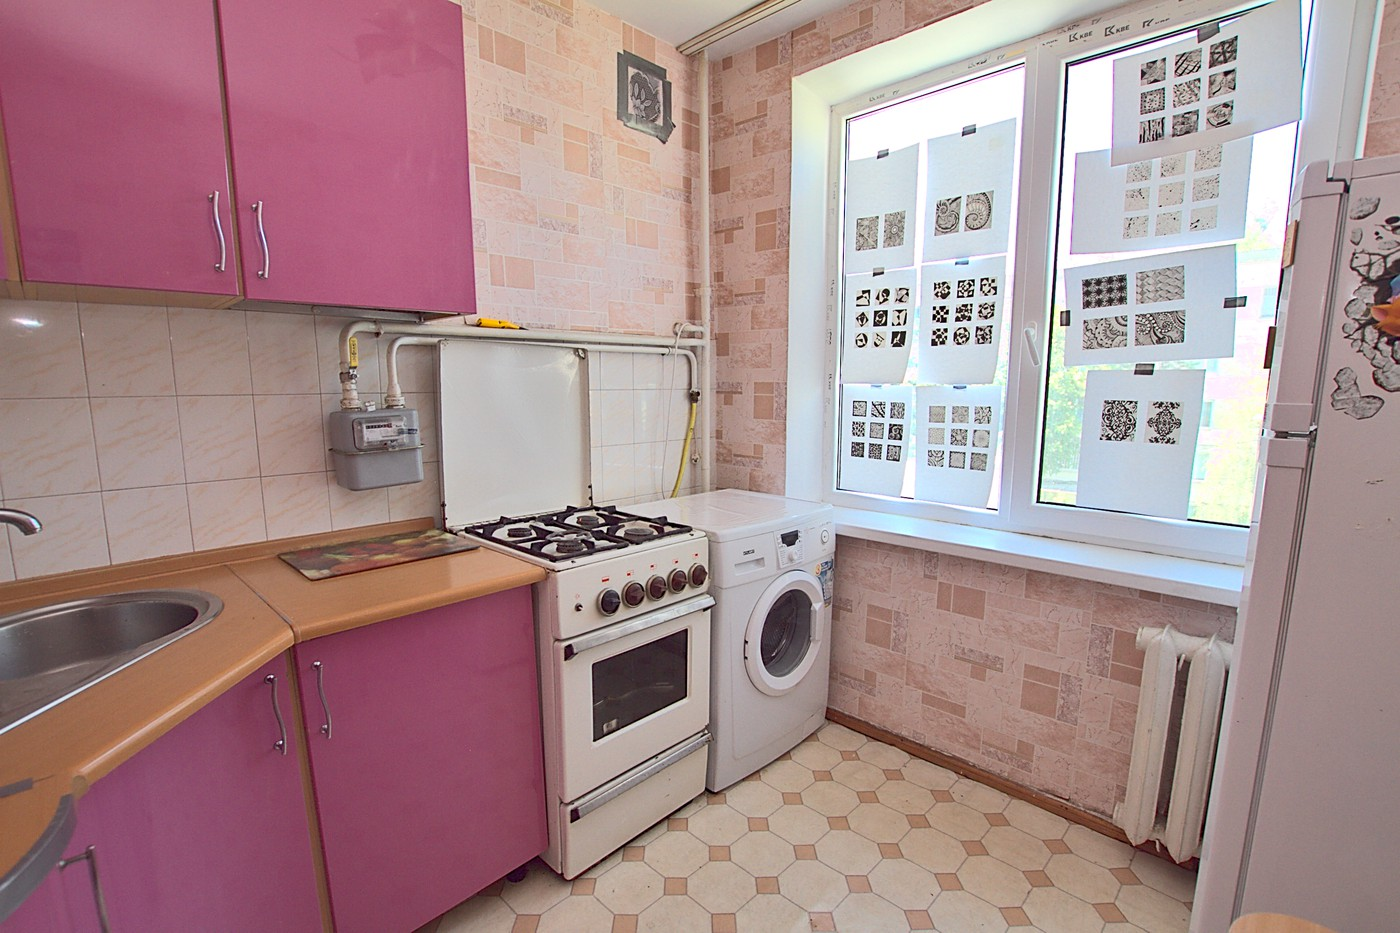 Cheap_rent_apartmet_Chisinau_Riscani_12.jpg